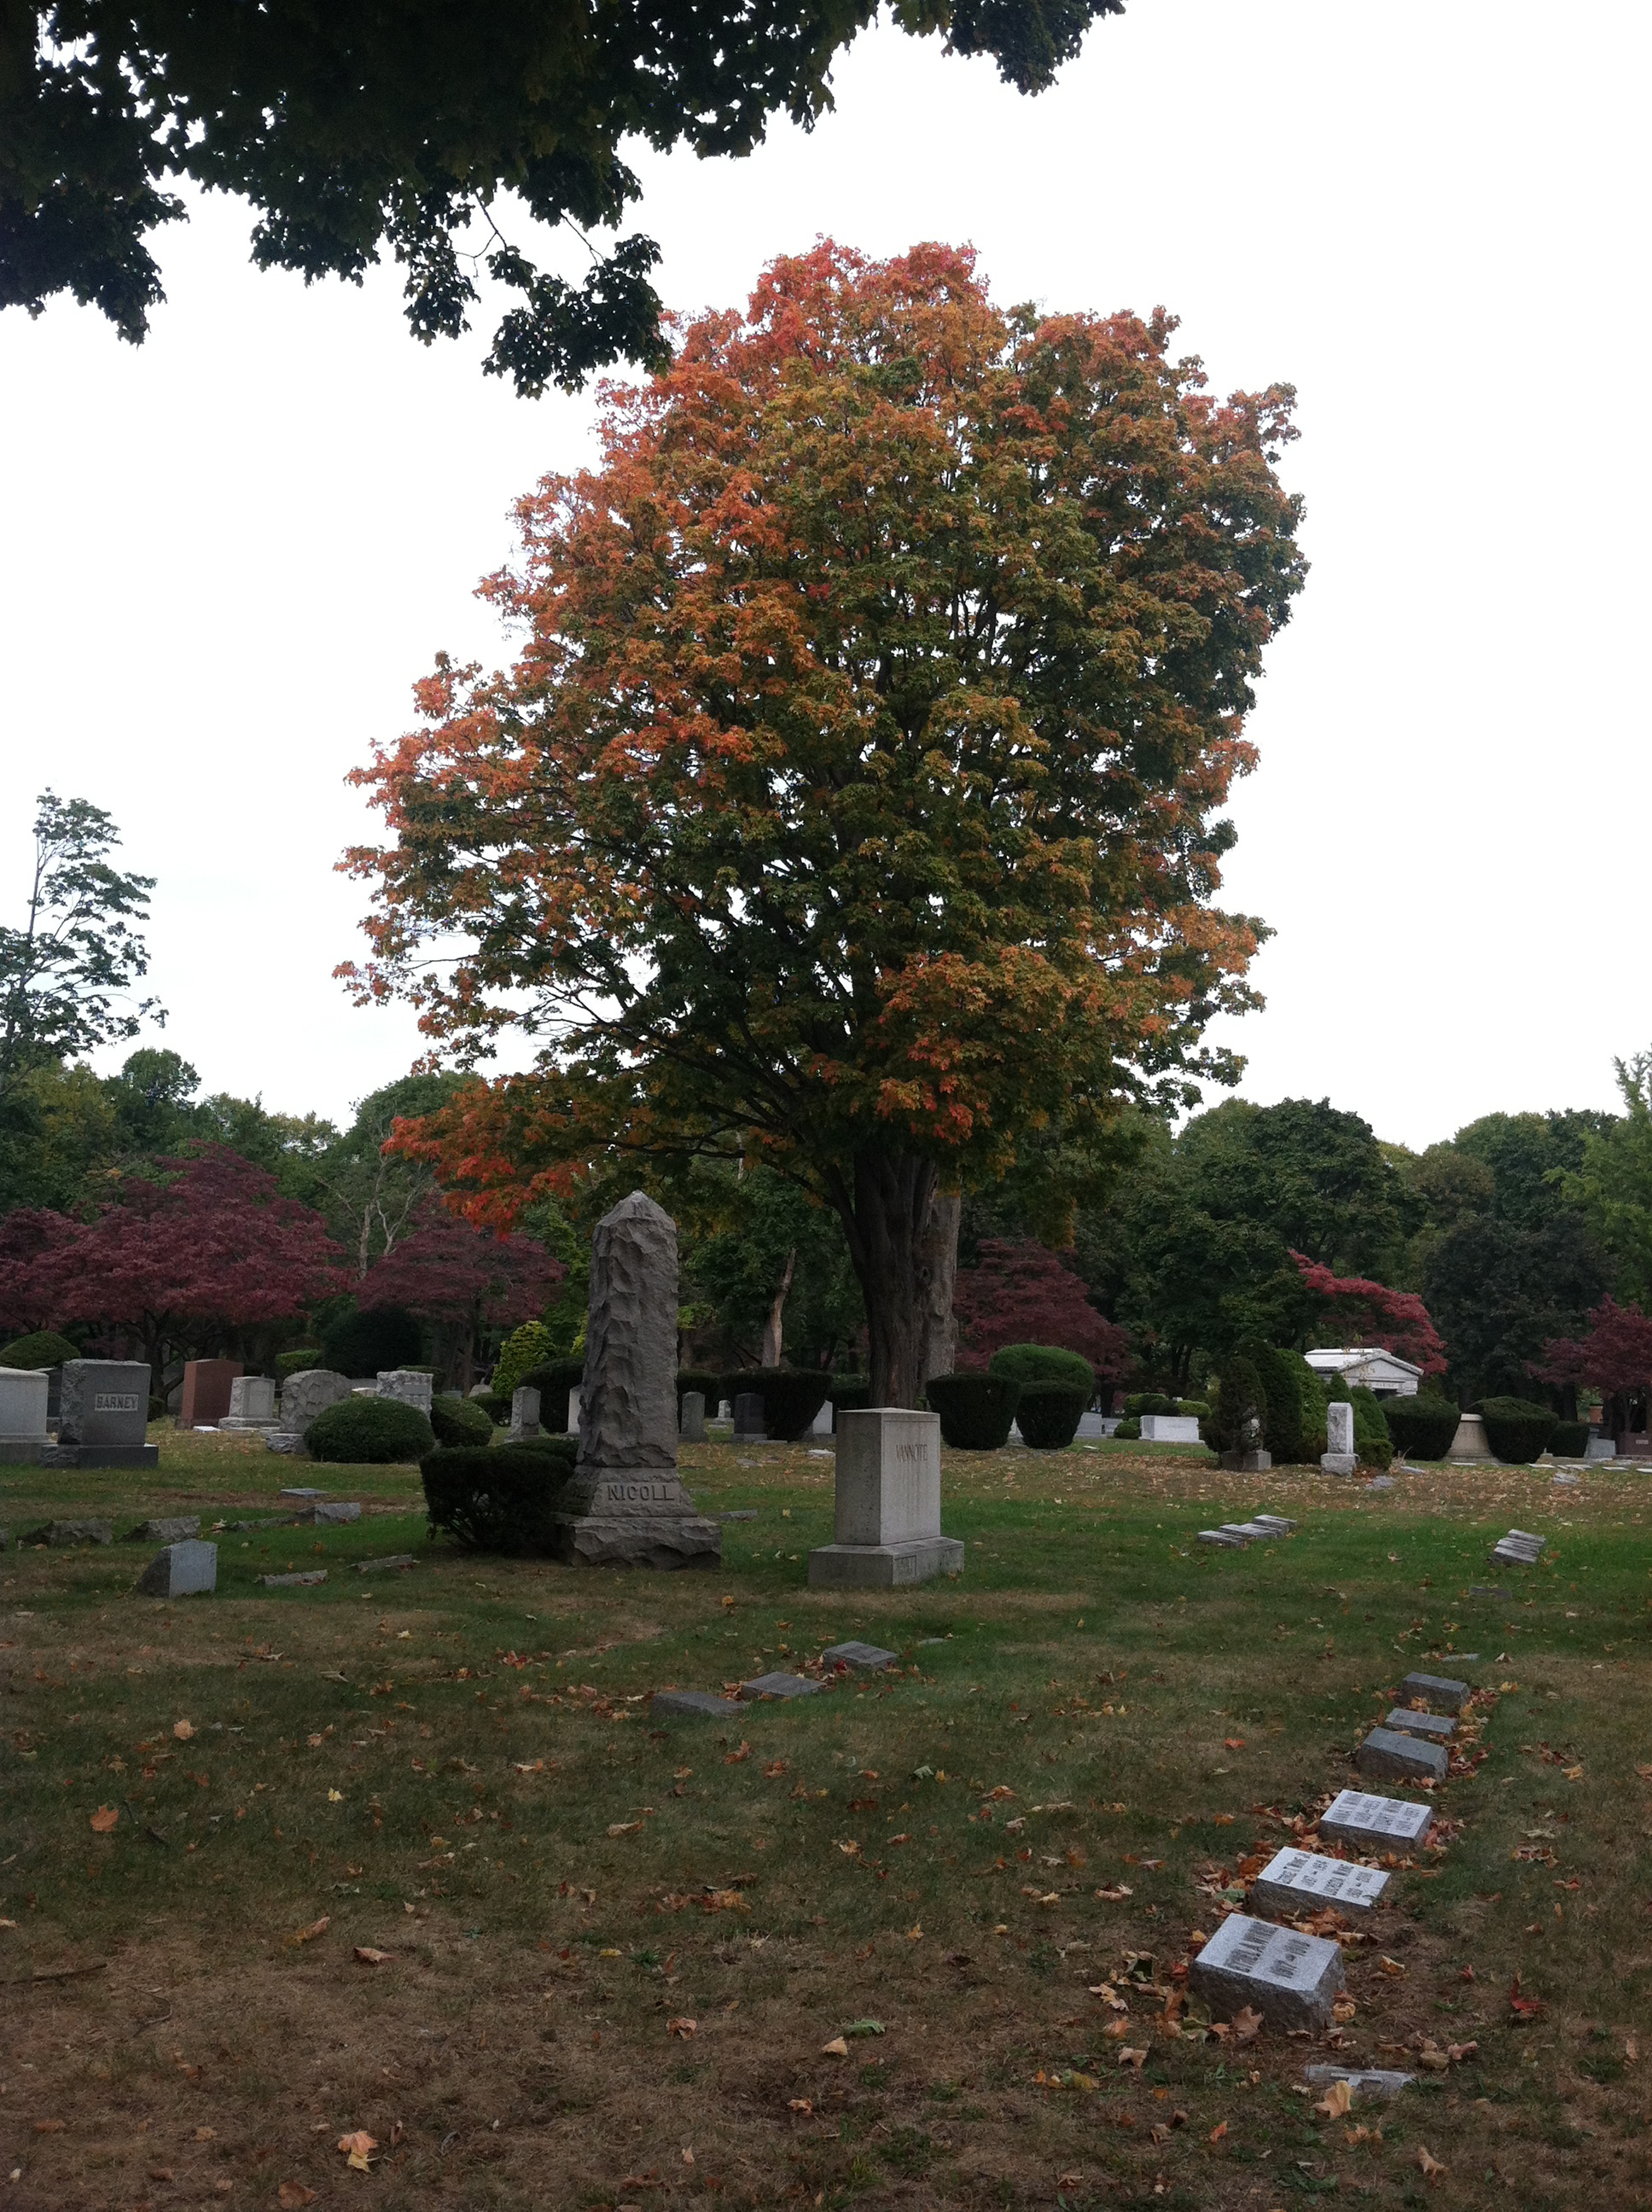 And then we went to a Jersey Cemetery Oct 19, 2013 125